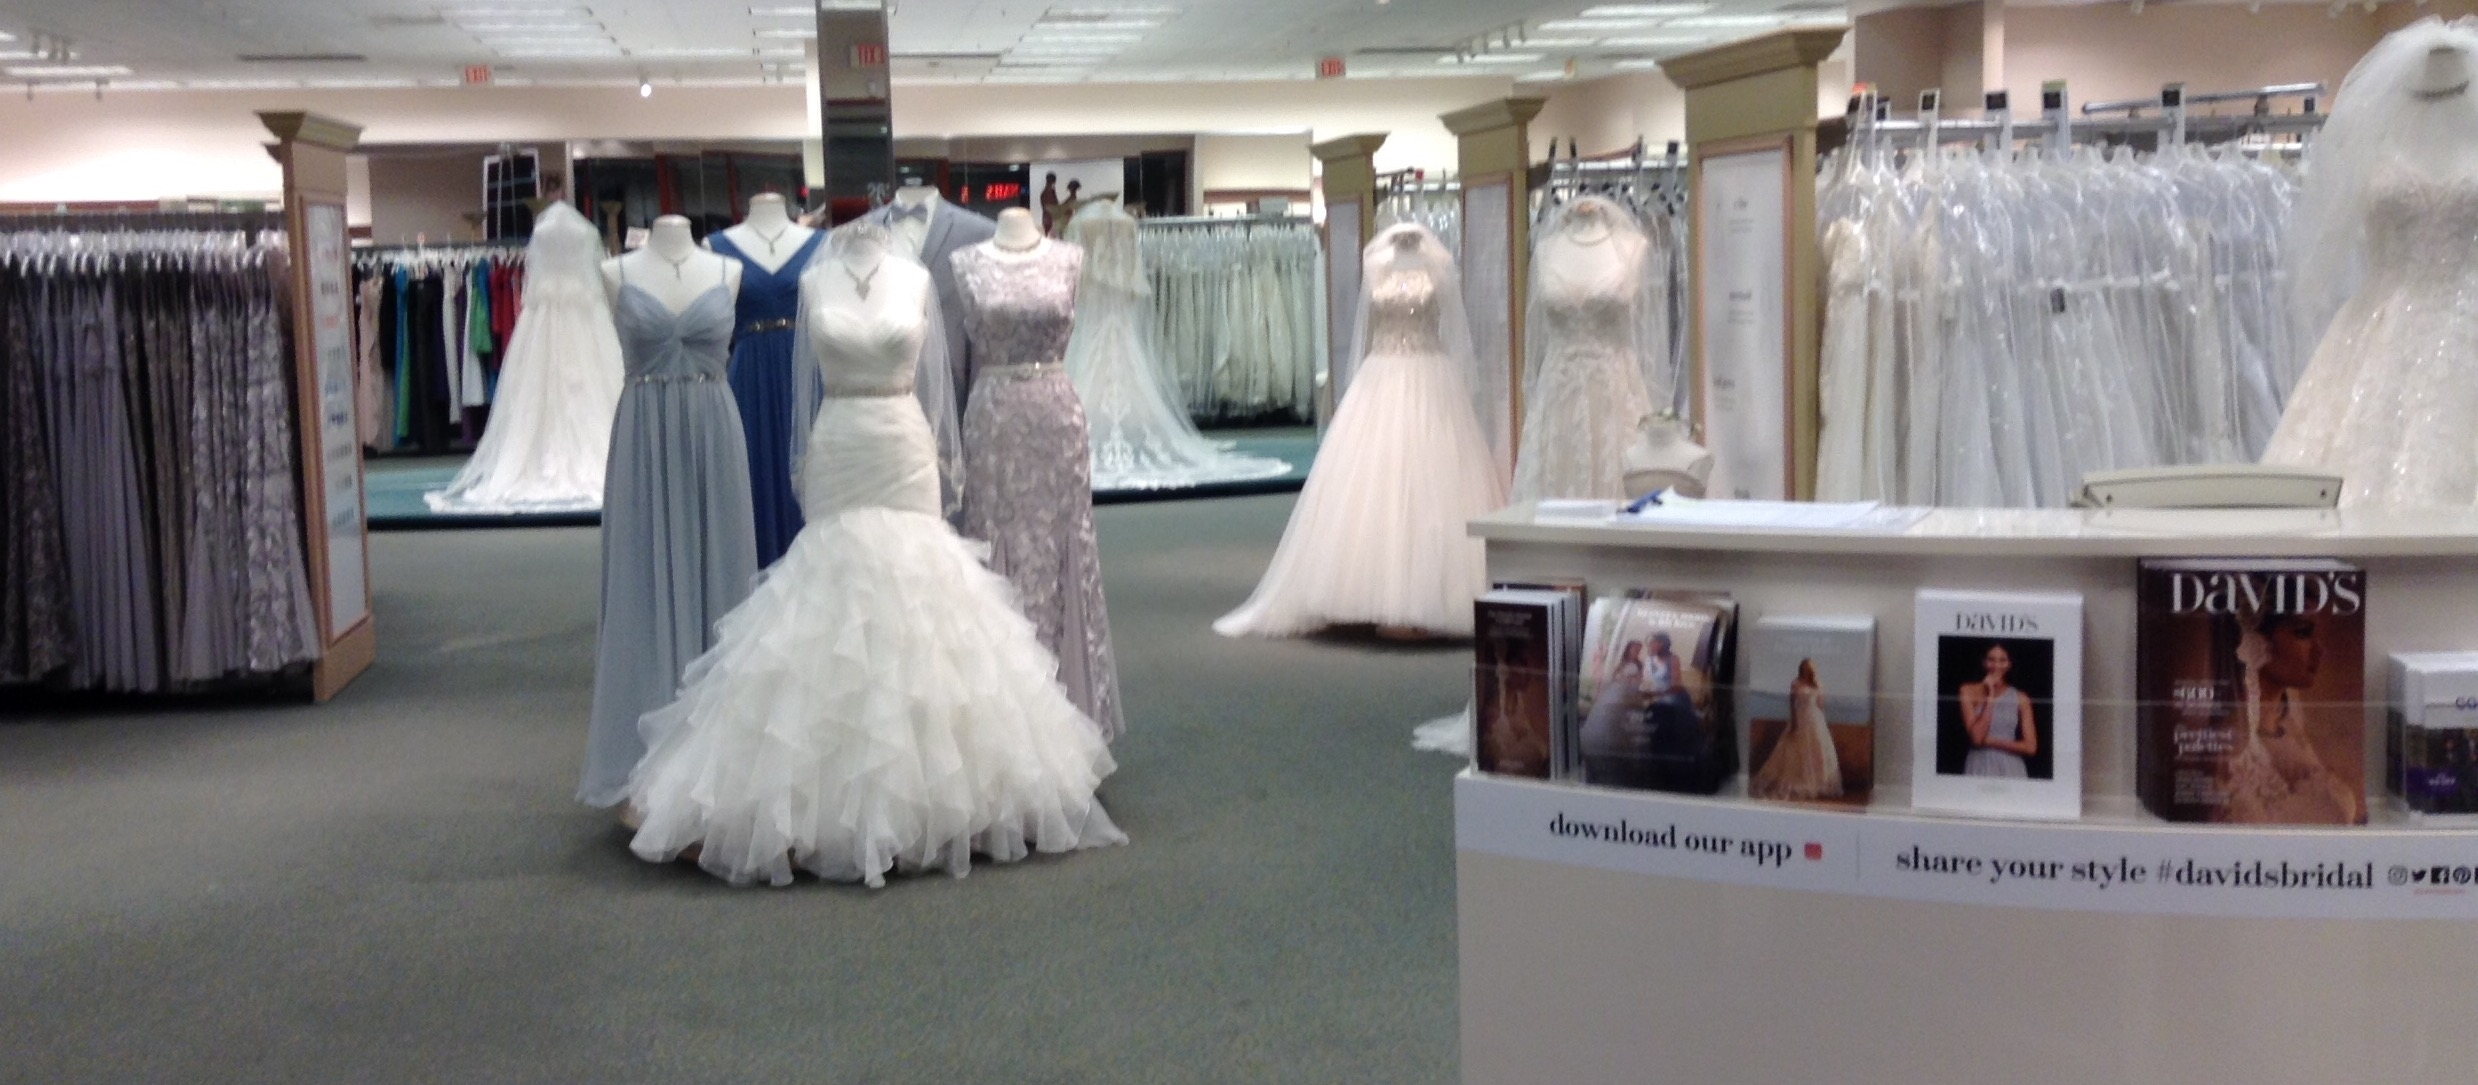 David S Bridal 2637 Gulf To Bay Blvd Clearwater Fl 33759